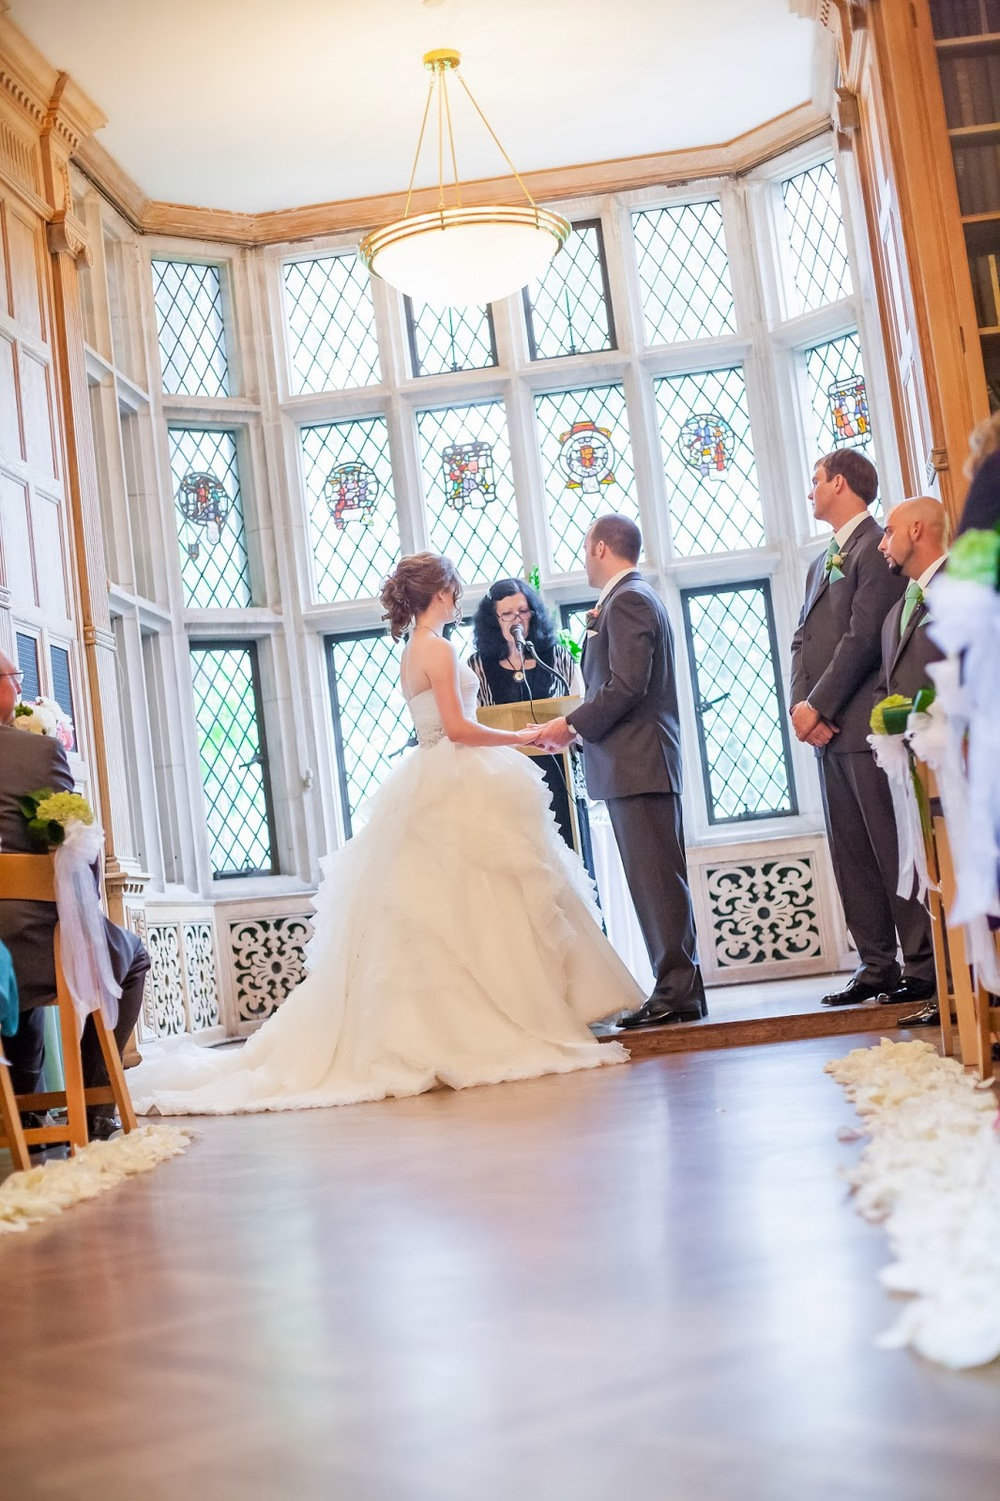 Ceremony in the historic library at The Morton Arboretum. Ivory rose petals line the aisles and green hydrangea as aisle markers. April is wearing a Justin Alexander gown.